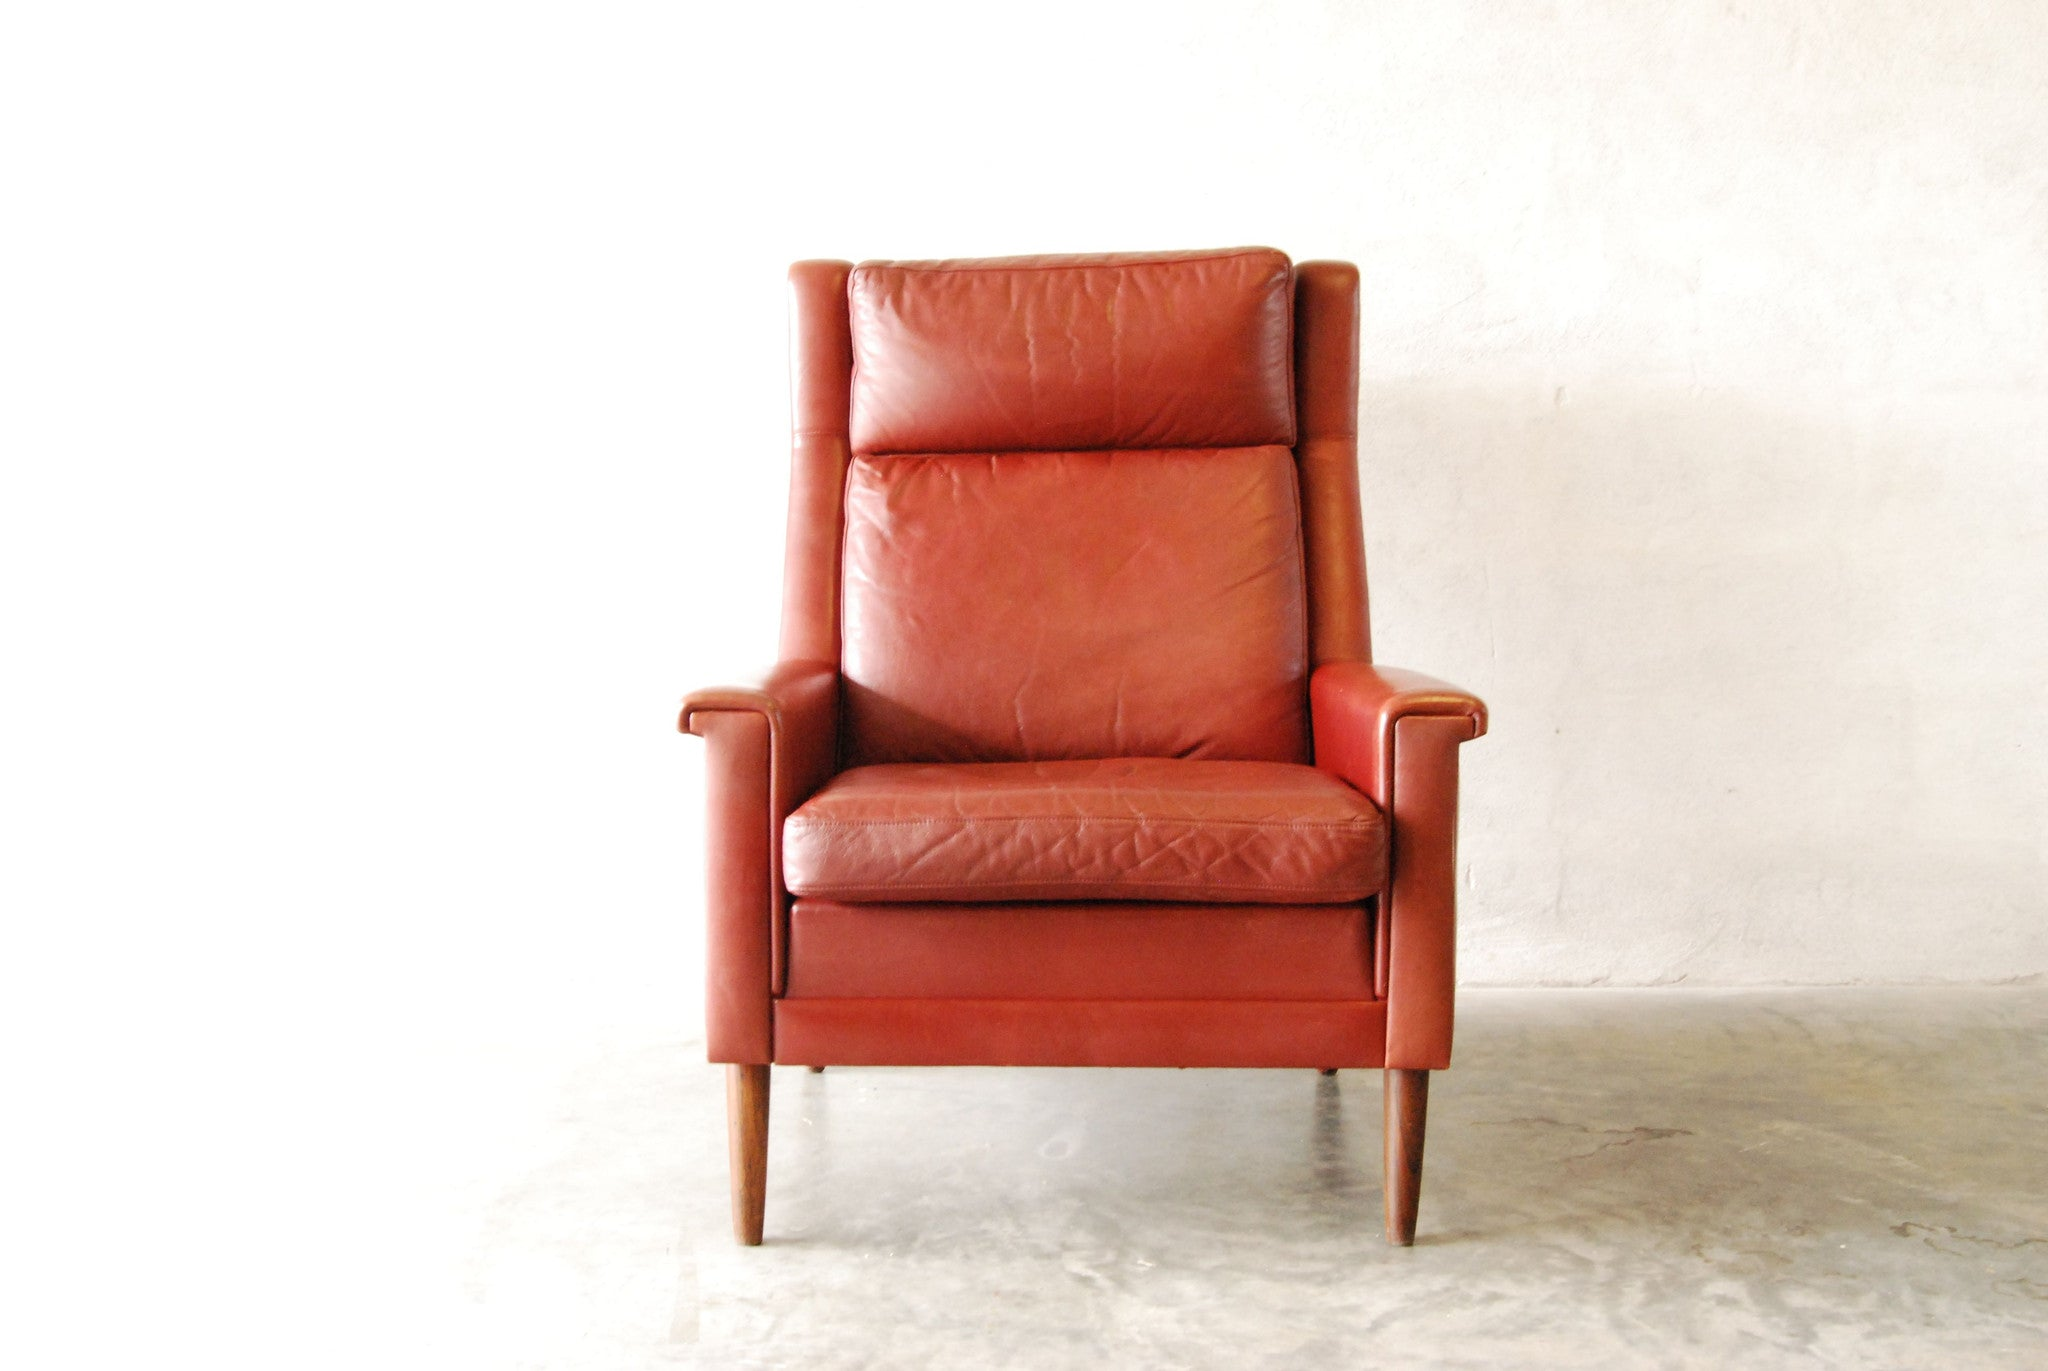 Chase & Sorensen Highback maroon lounge chair